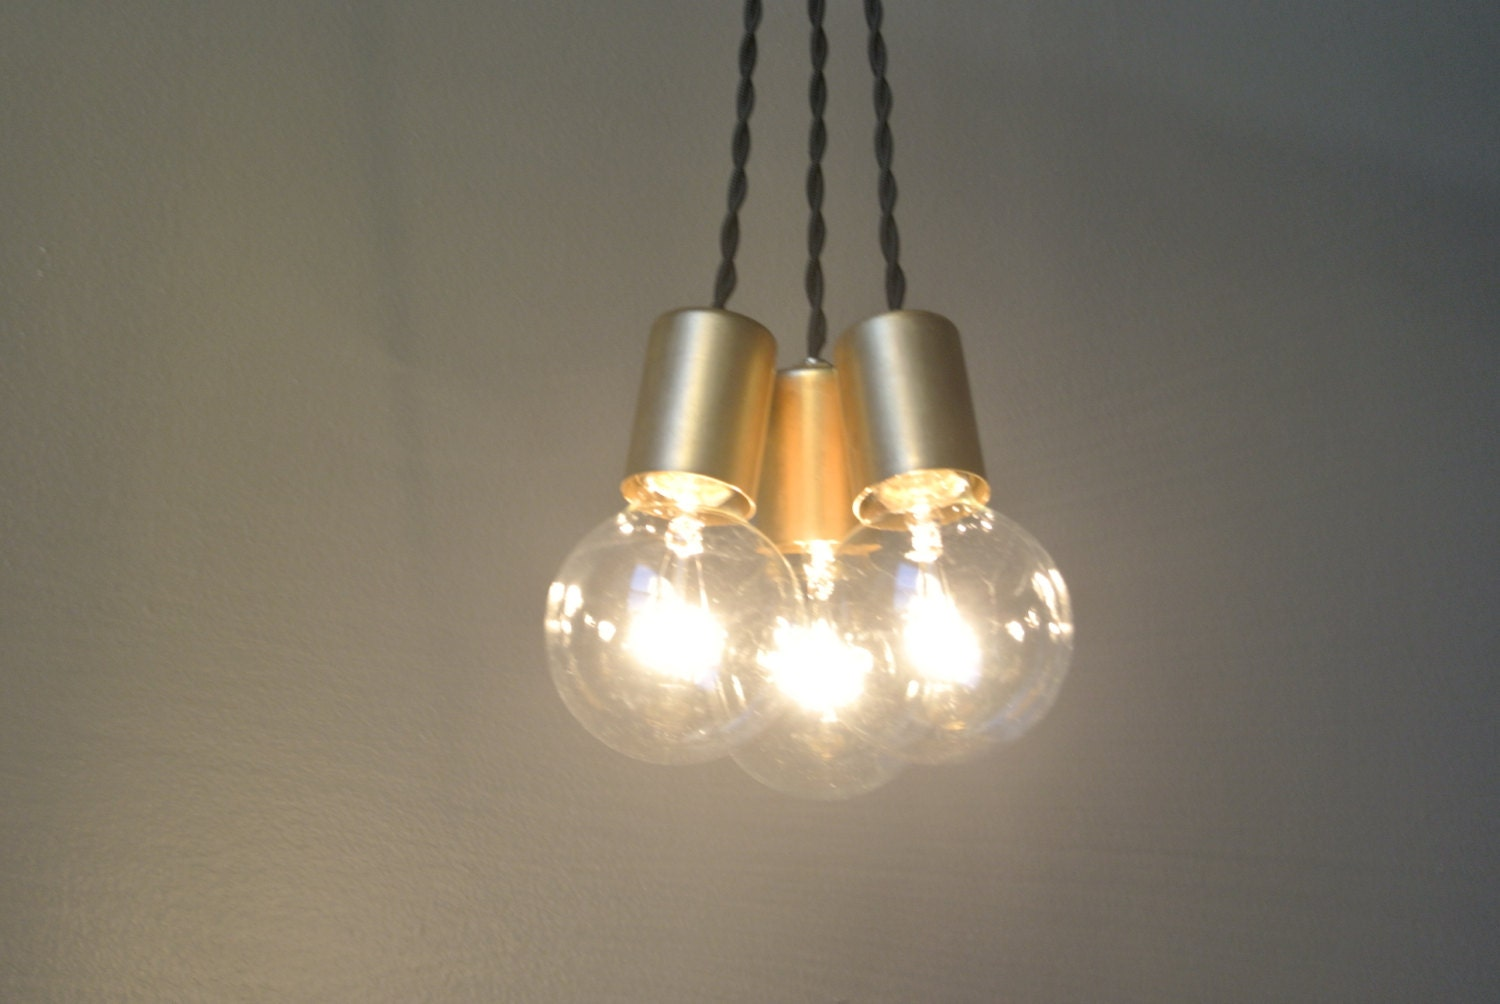 Brass edison bulb pendant light chandelier by pepeandcarols - Hanging bulb chandelier ...